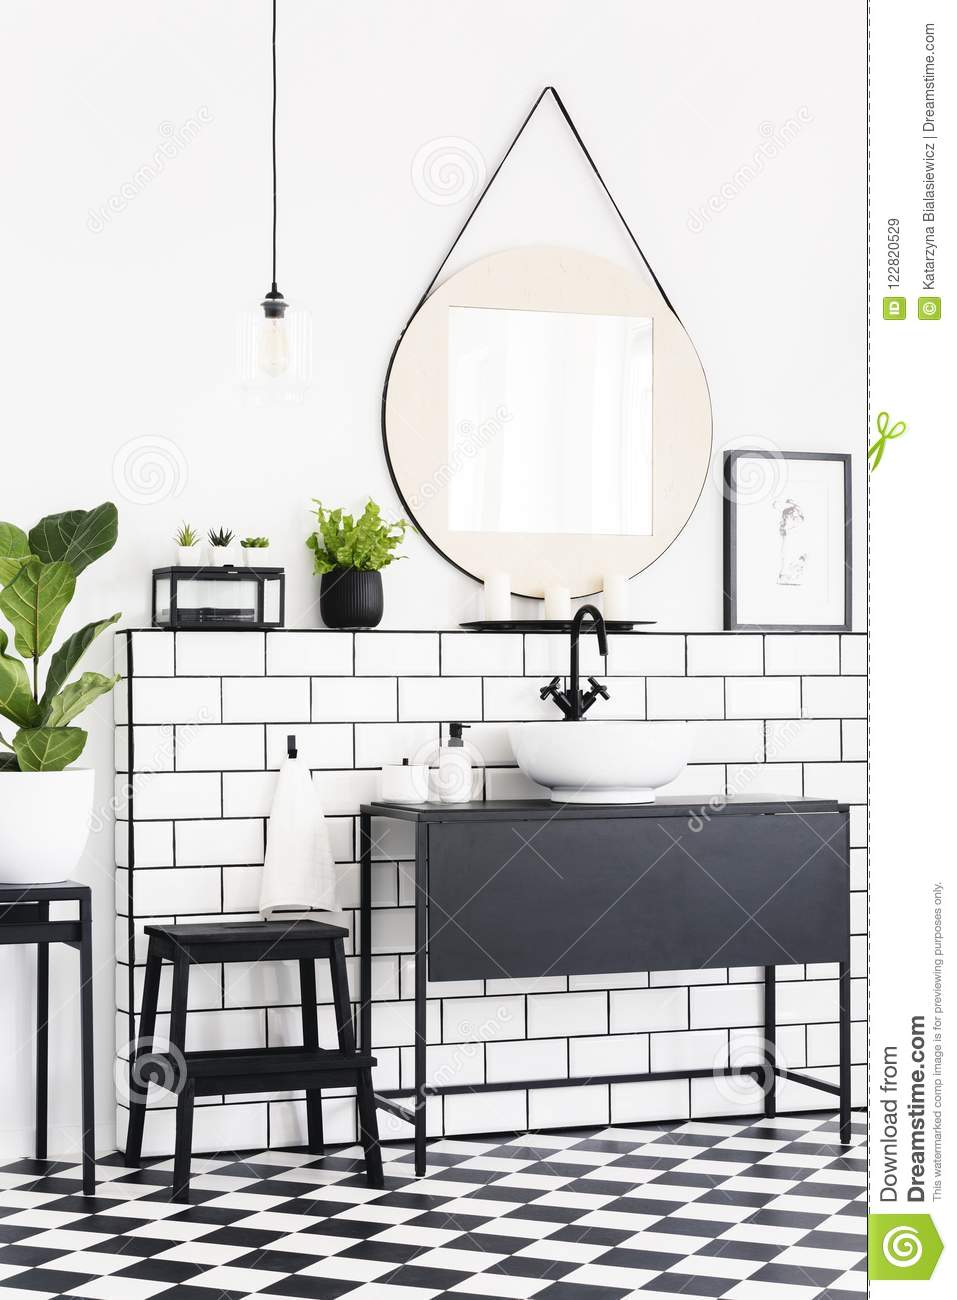 Astonishing Plants And Mirror In Black And White Bathroom Interior With Spiritservingveterans Wood Chair Design Ideas Spiritservingveteransorg